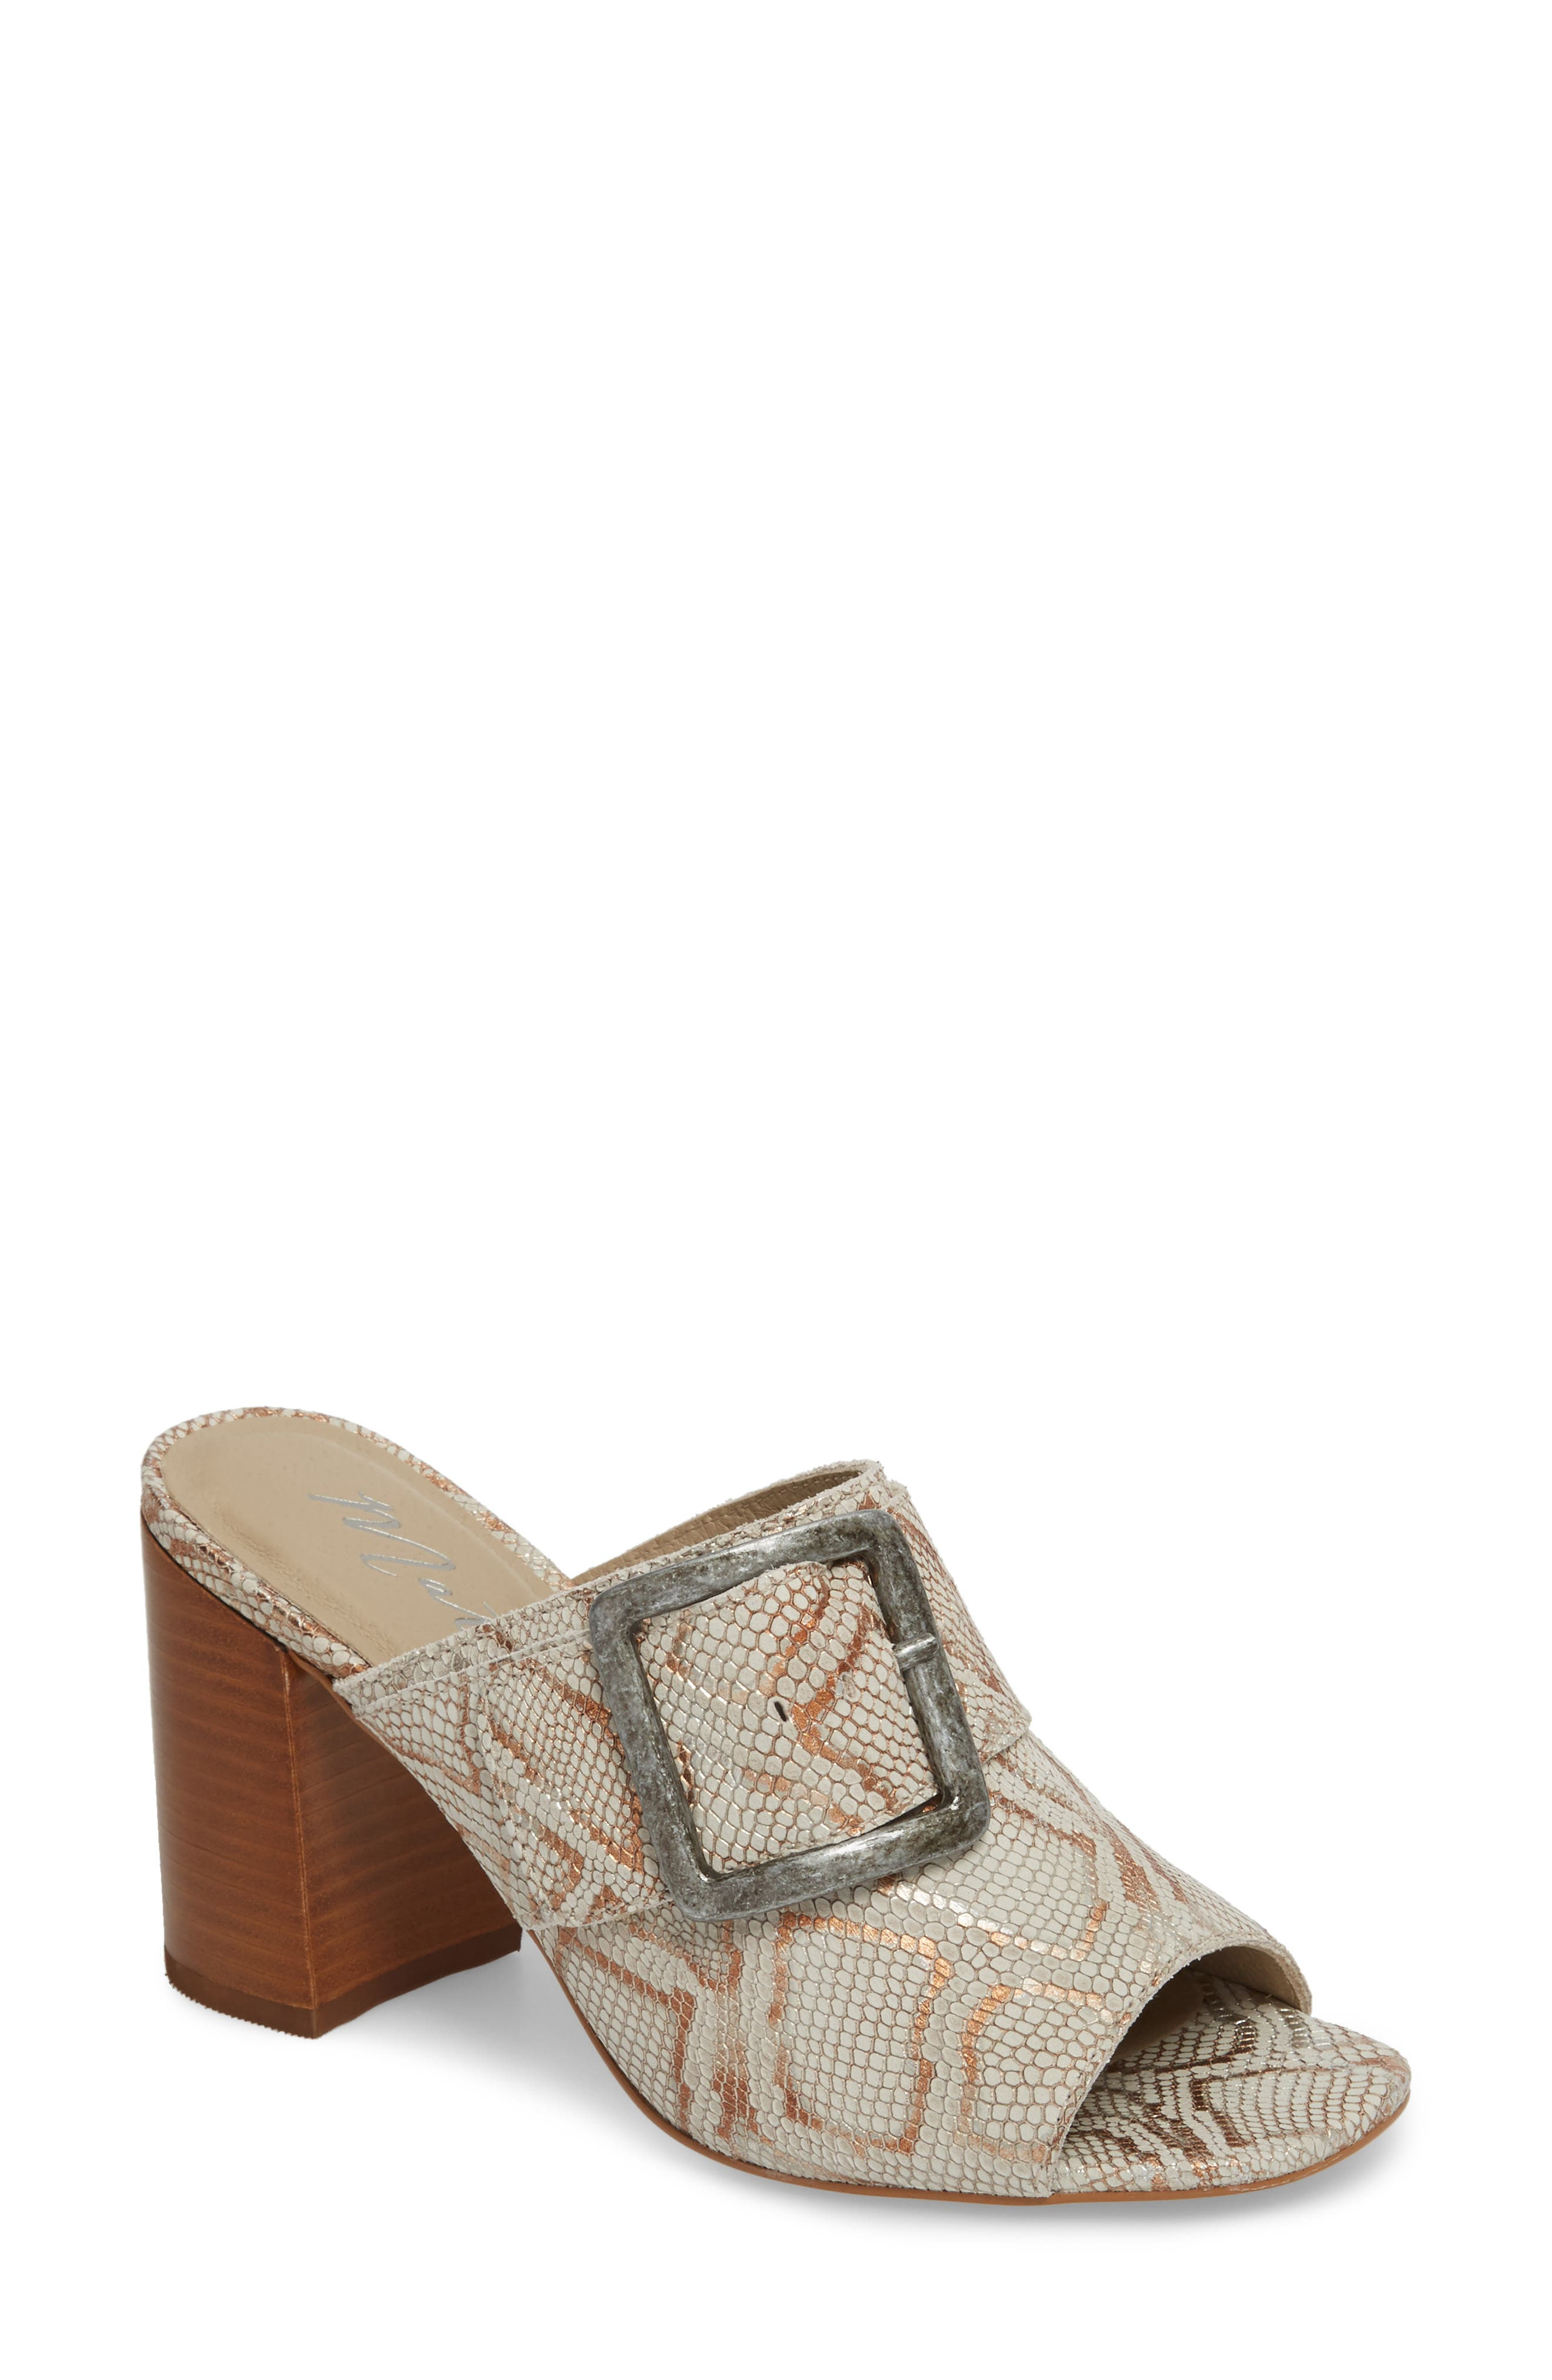 Beatrice Sandal,                         Main,                         color, 020